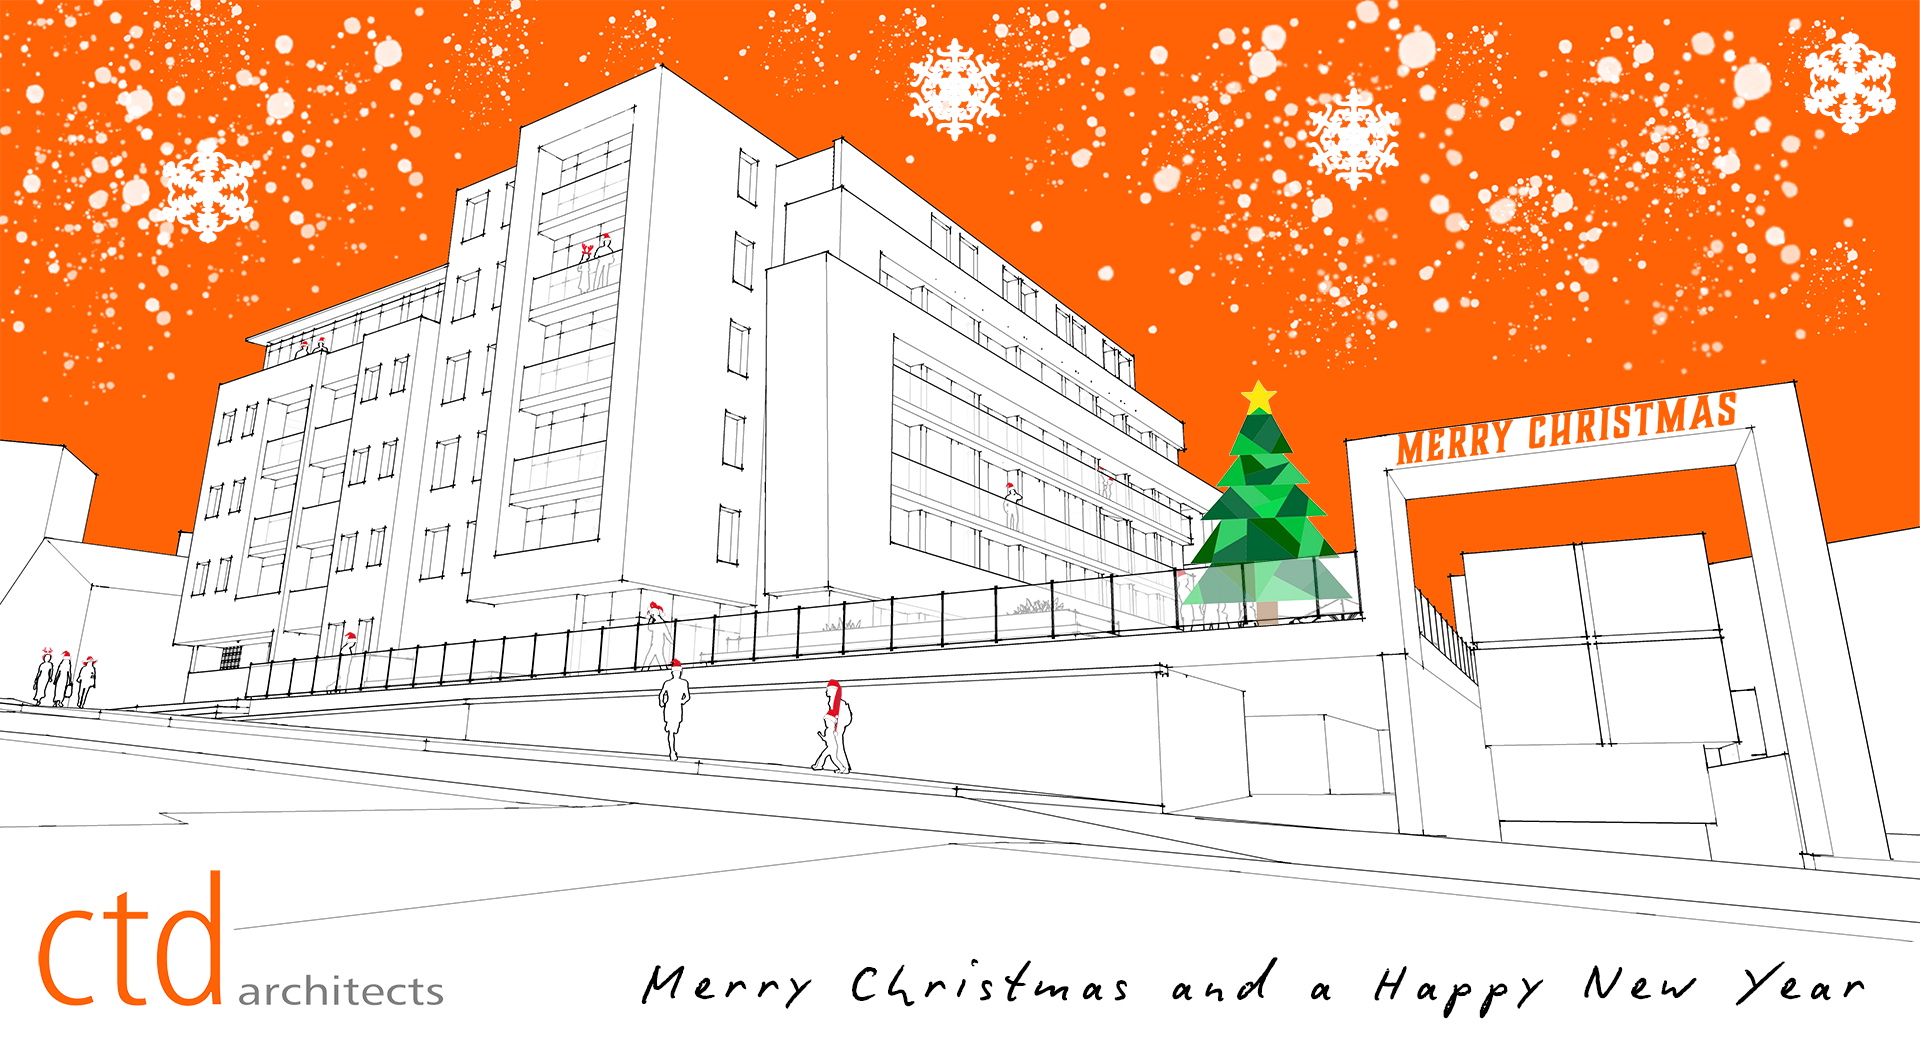 ctd architects Merry Christmas 2018